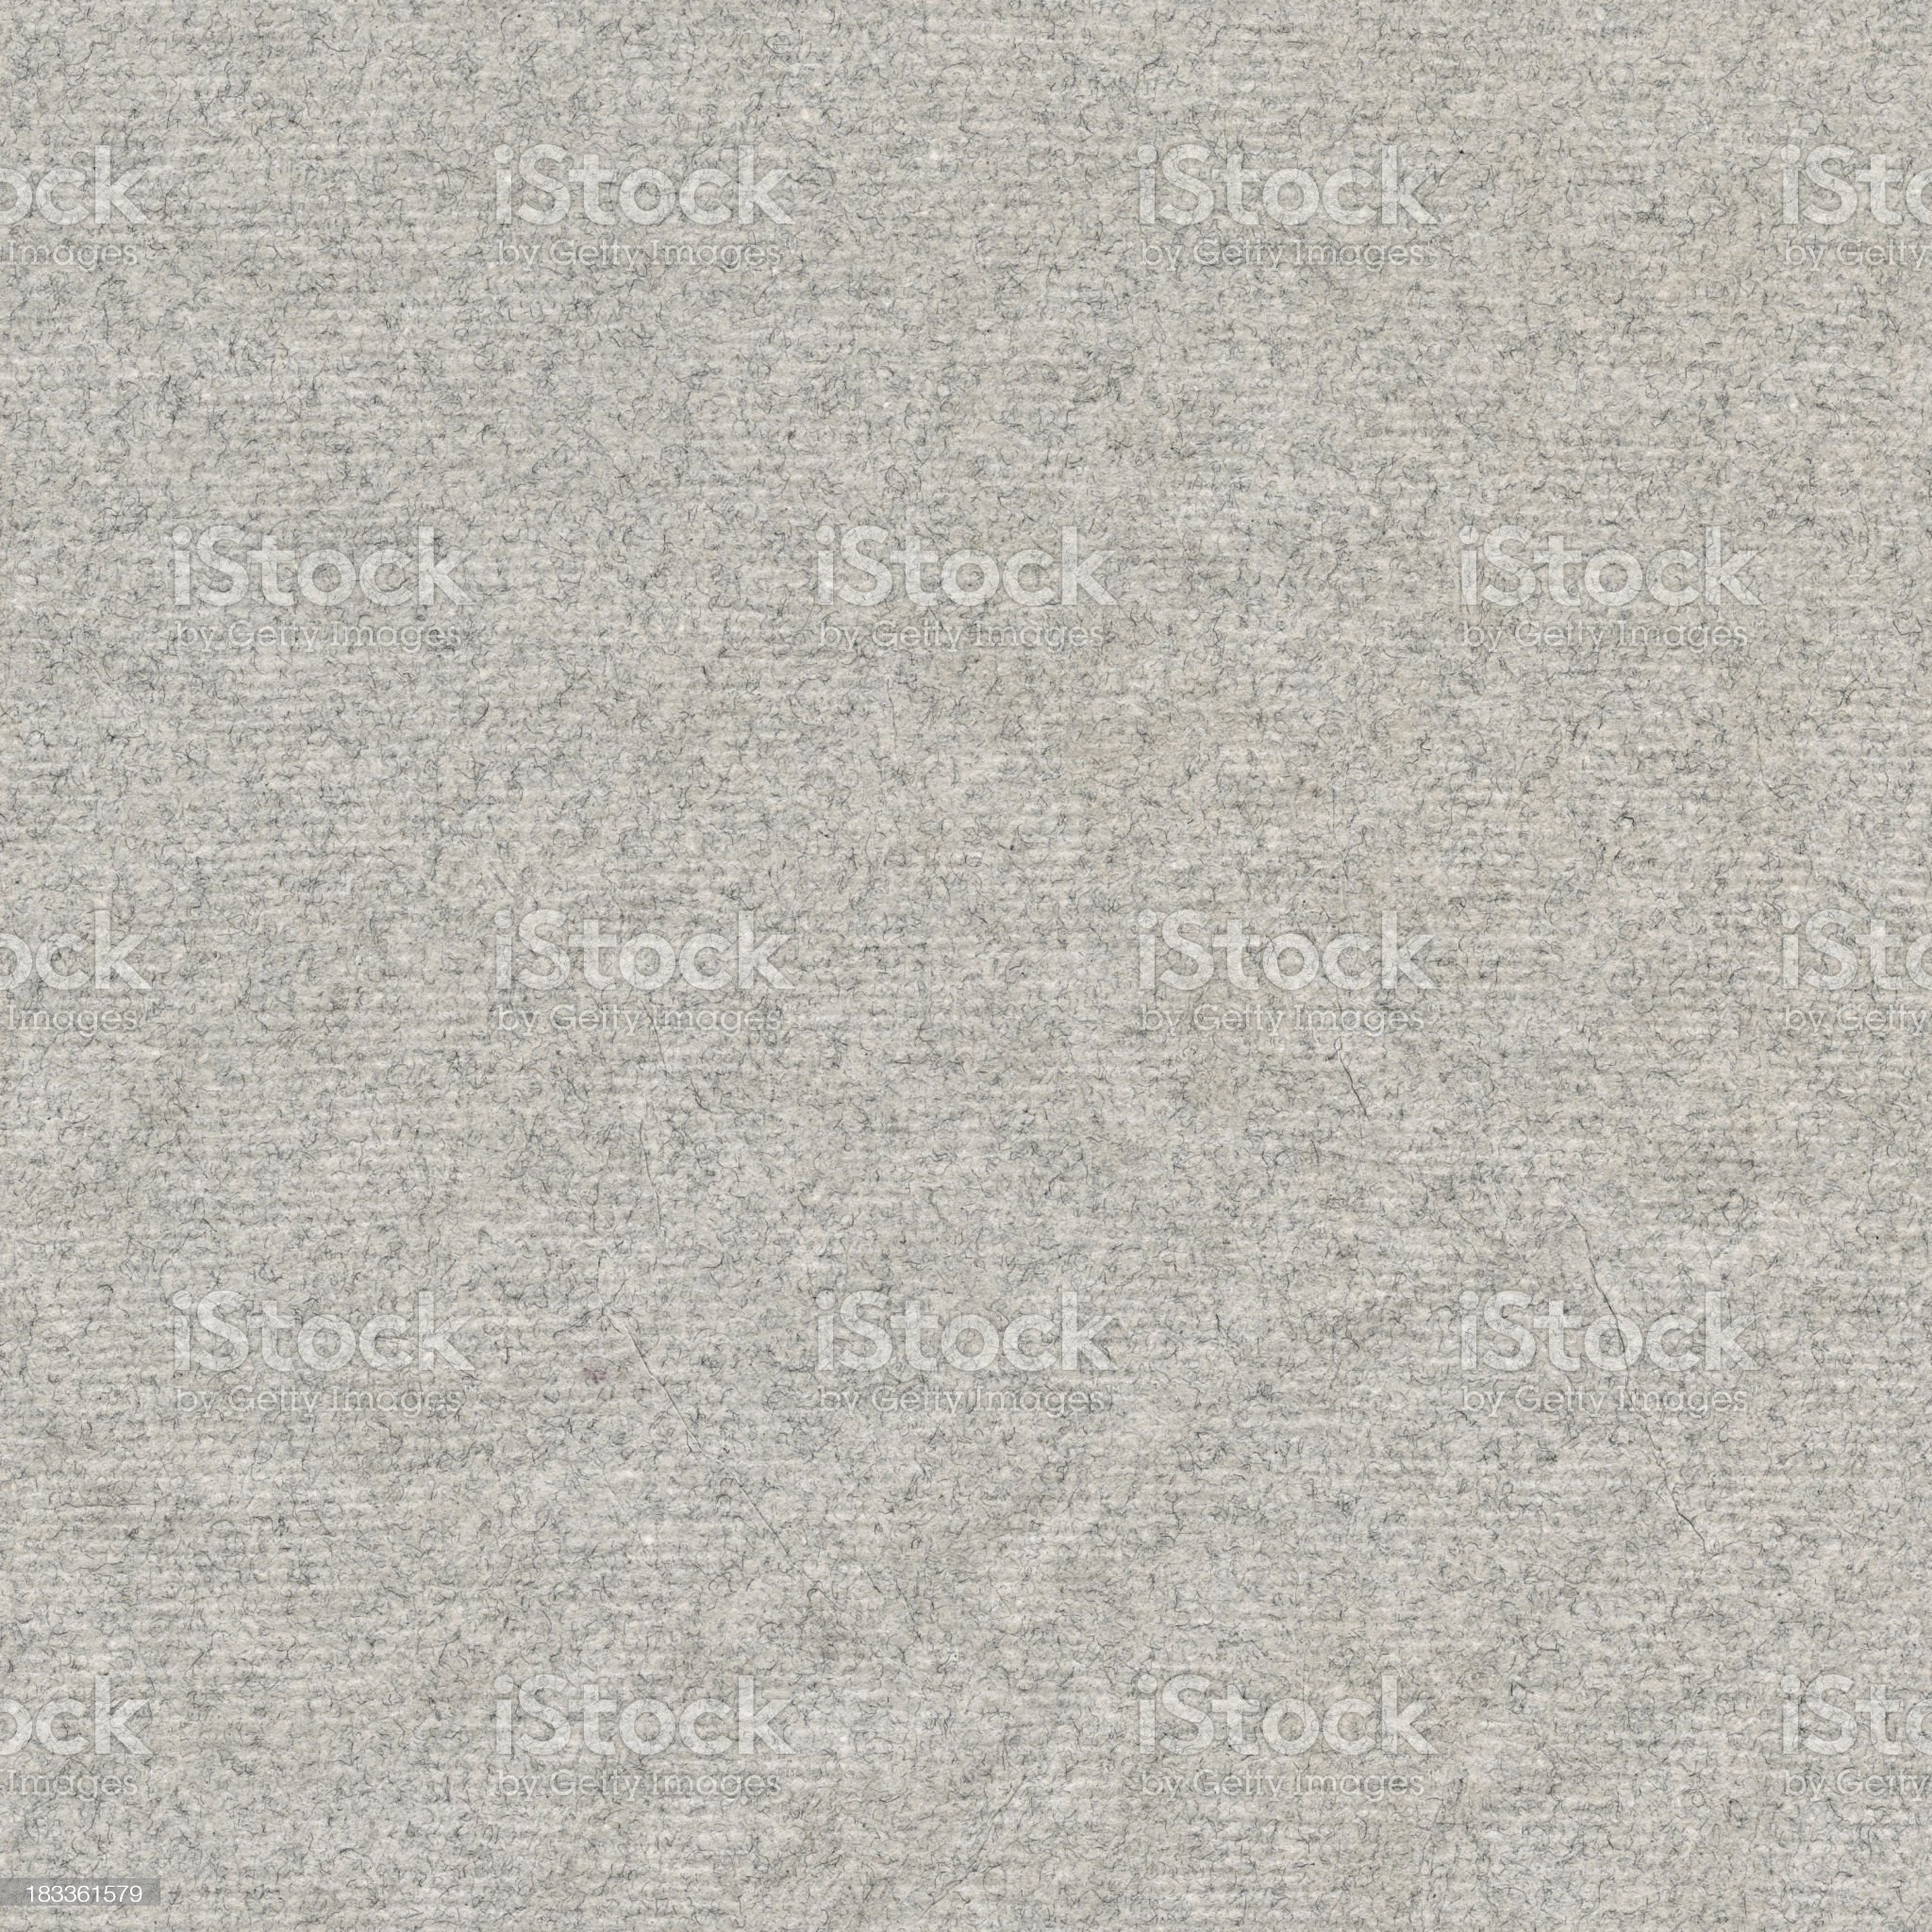 Seamless paper with threads background royalty-free stock photo